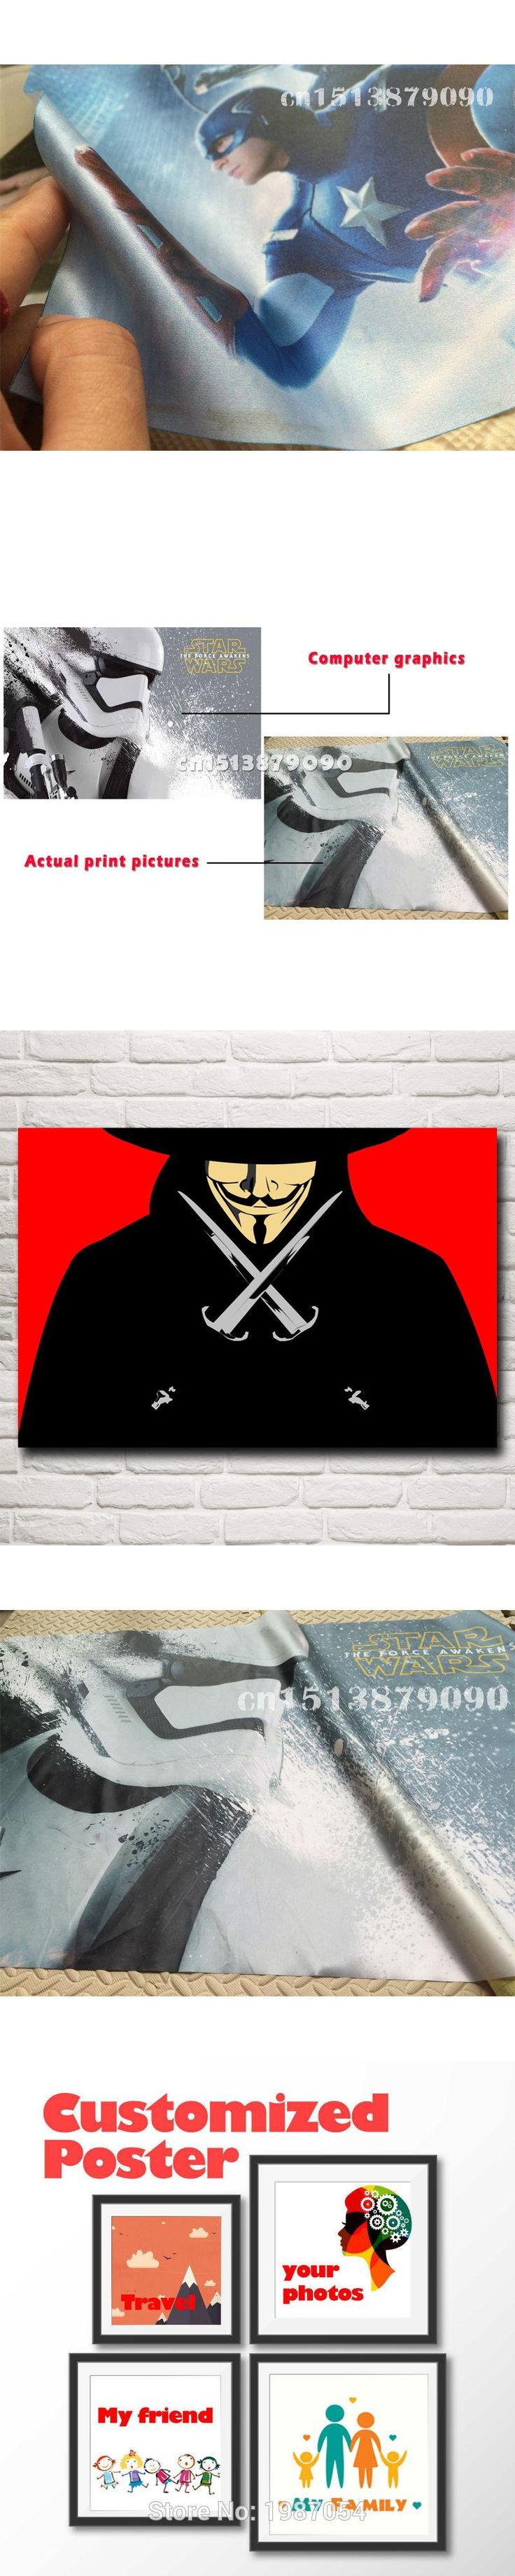 Movie V For Vendetta Mask Art Silk print Poster wall Decorative Pictures 12x18 16X24 20x30 24x36 Inches Free Shipping